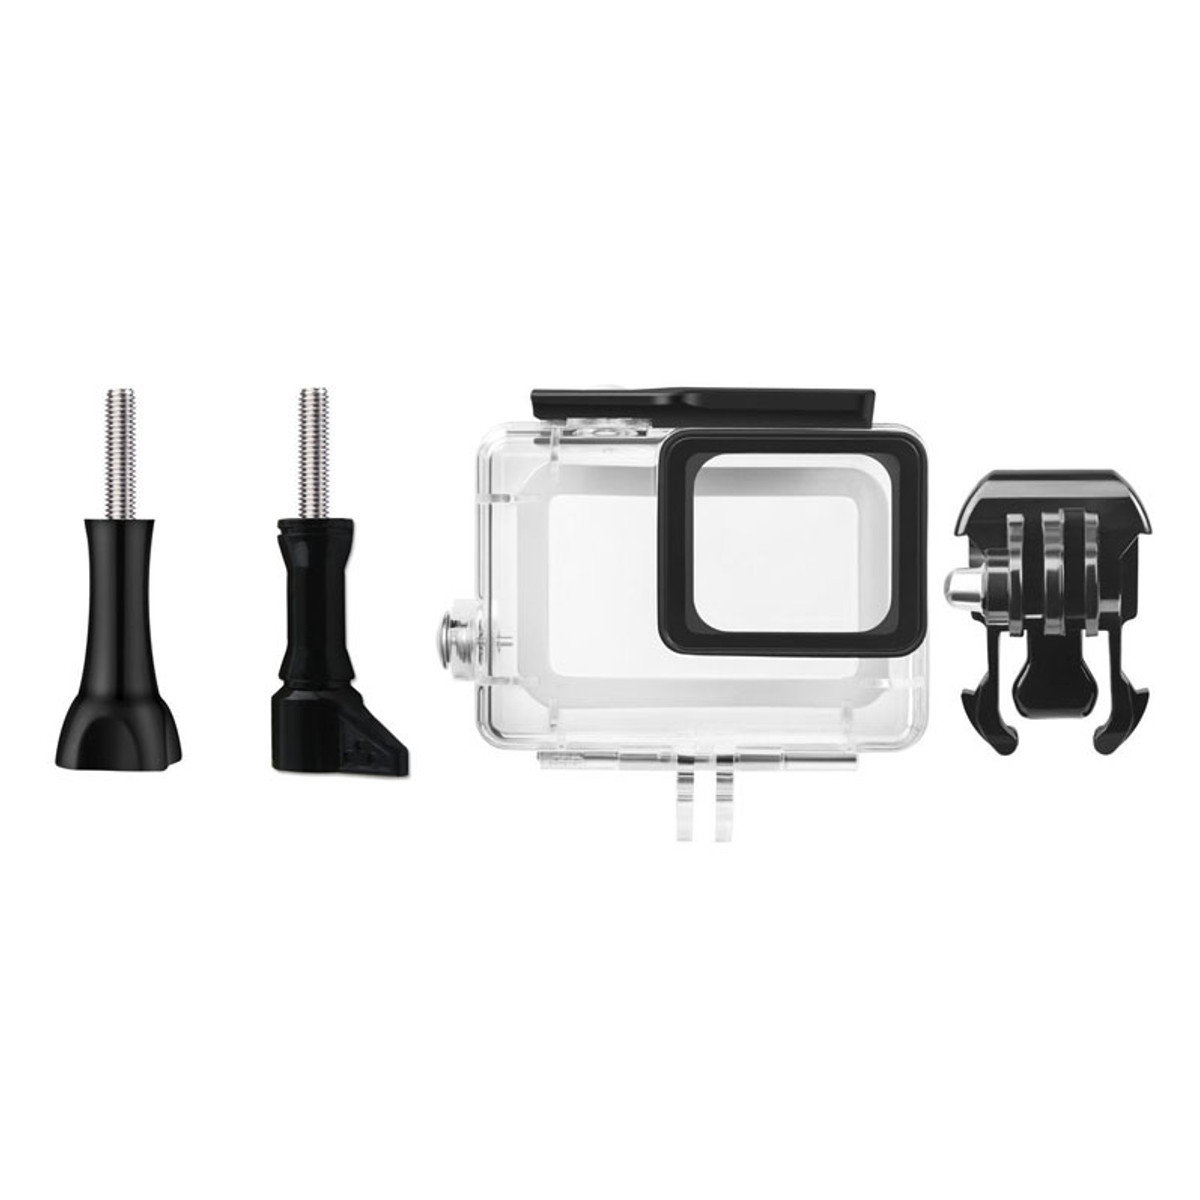 Diving Waterproof Housing Case Lens Cap Film Accessory Kit For GoPro Hero 6 5 Black Sport Camera